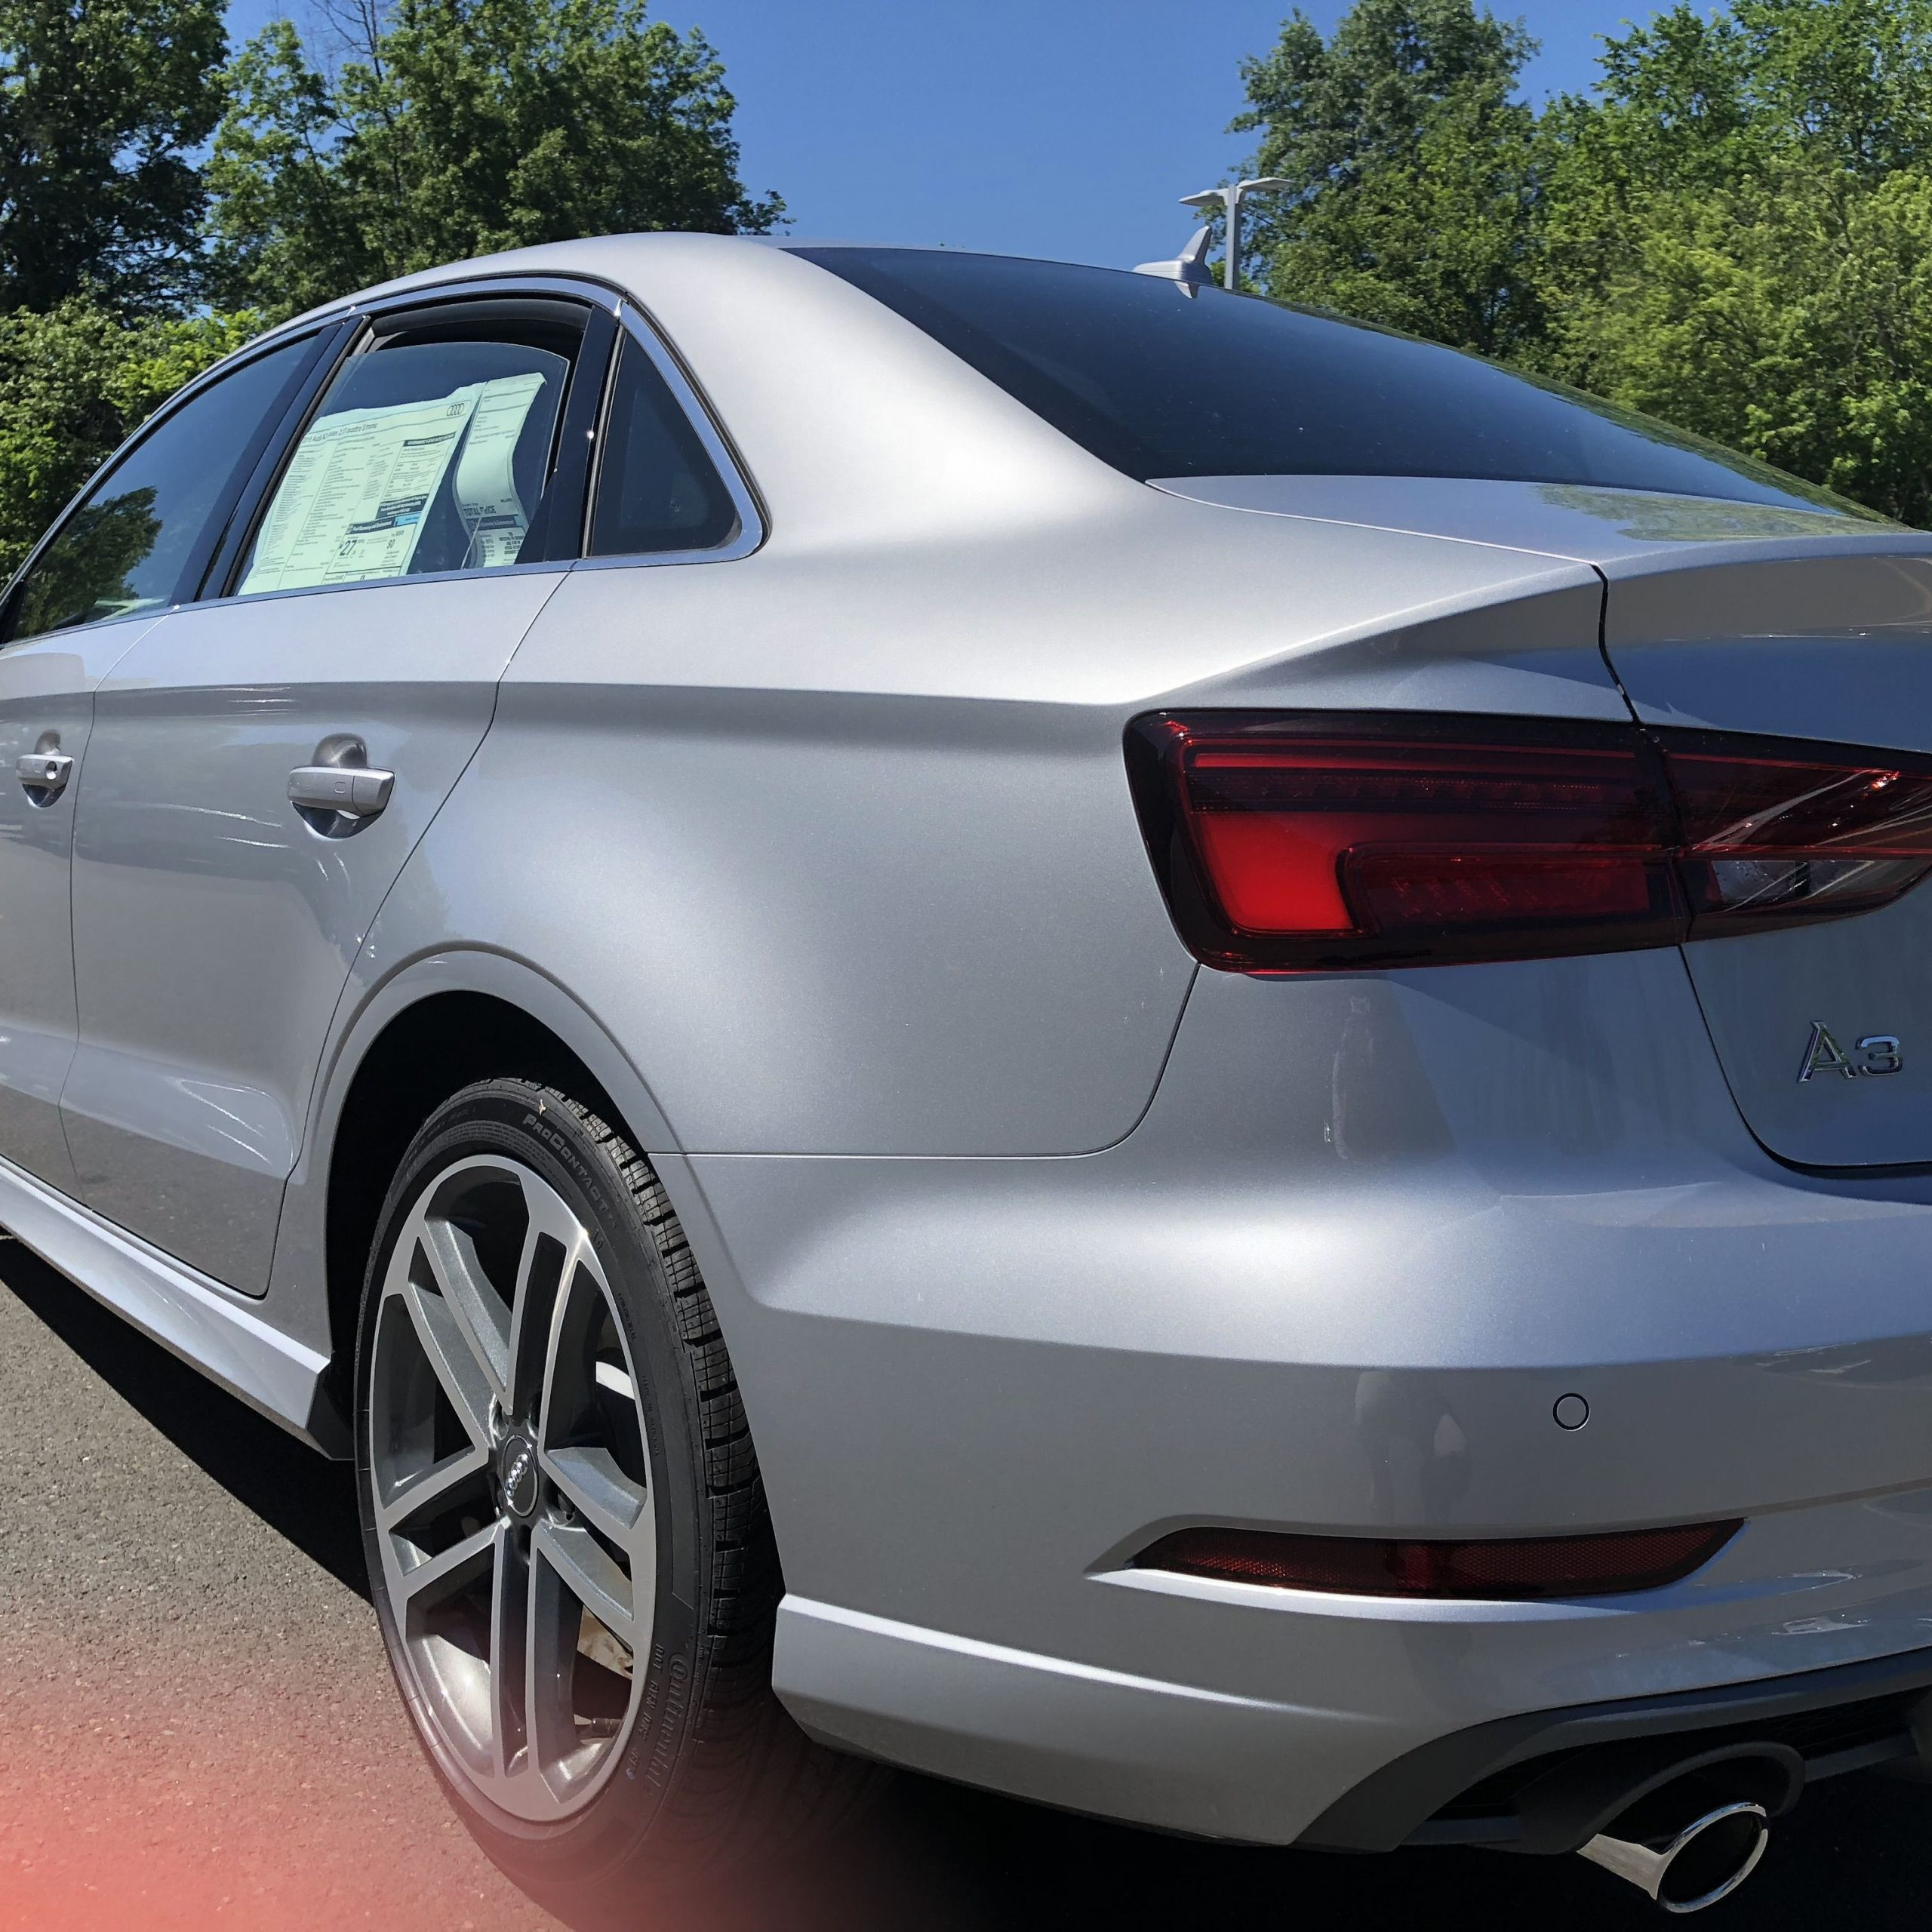 Used Audi Unique Rear Angled View Of the 2018 Audi A3 In Florett Silver